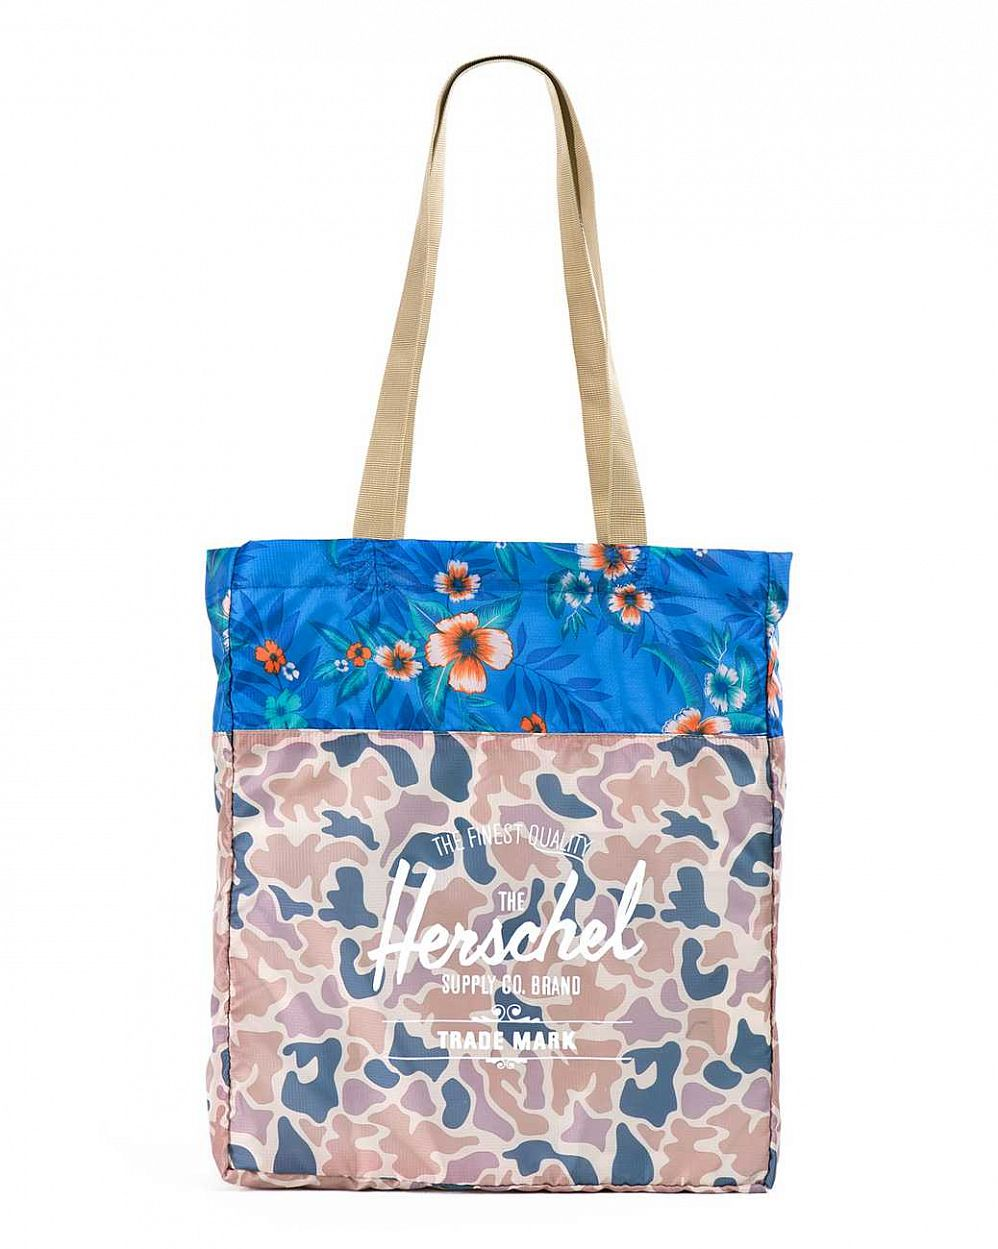 купить Сумка Herschel Packable Travel Tote Bag Duck Camo Paradise в Москве